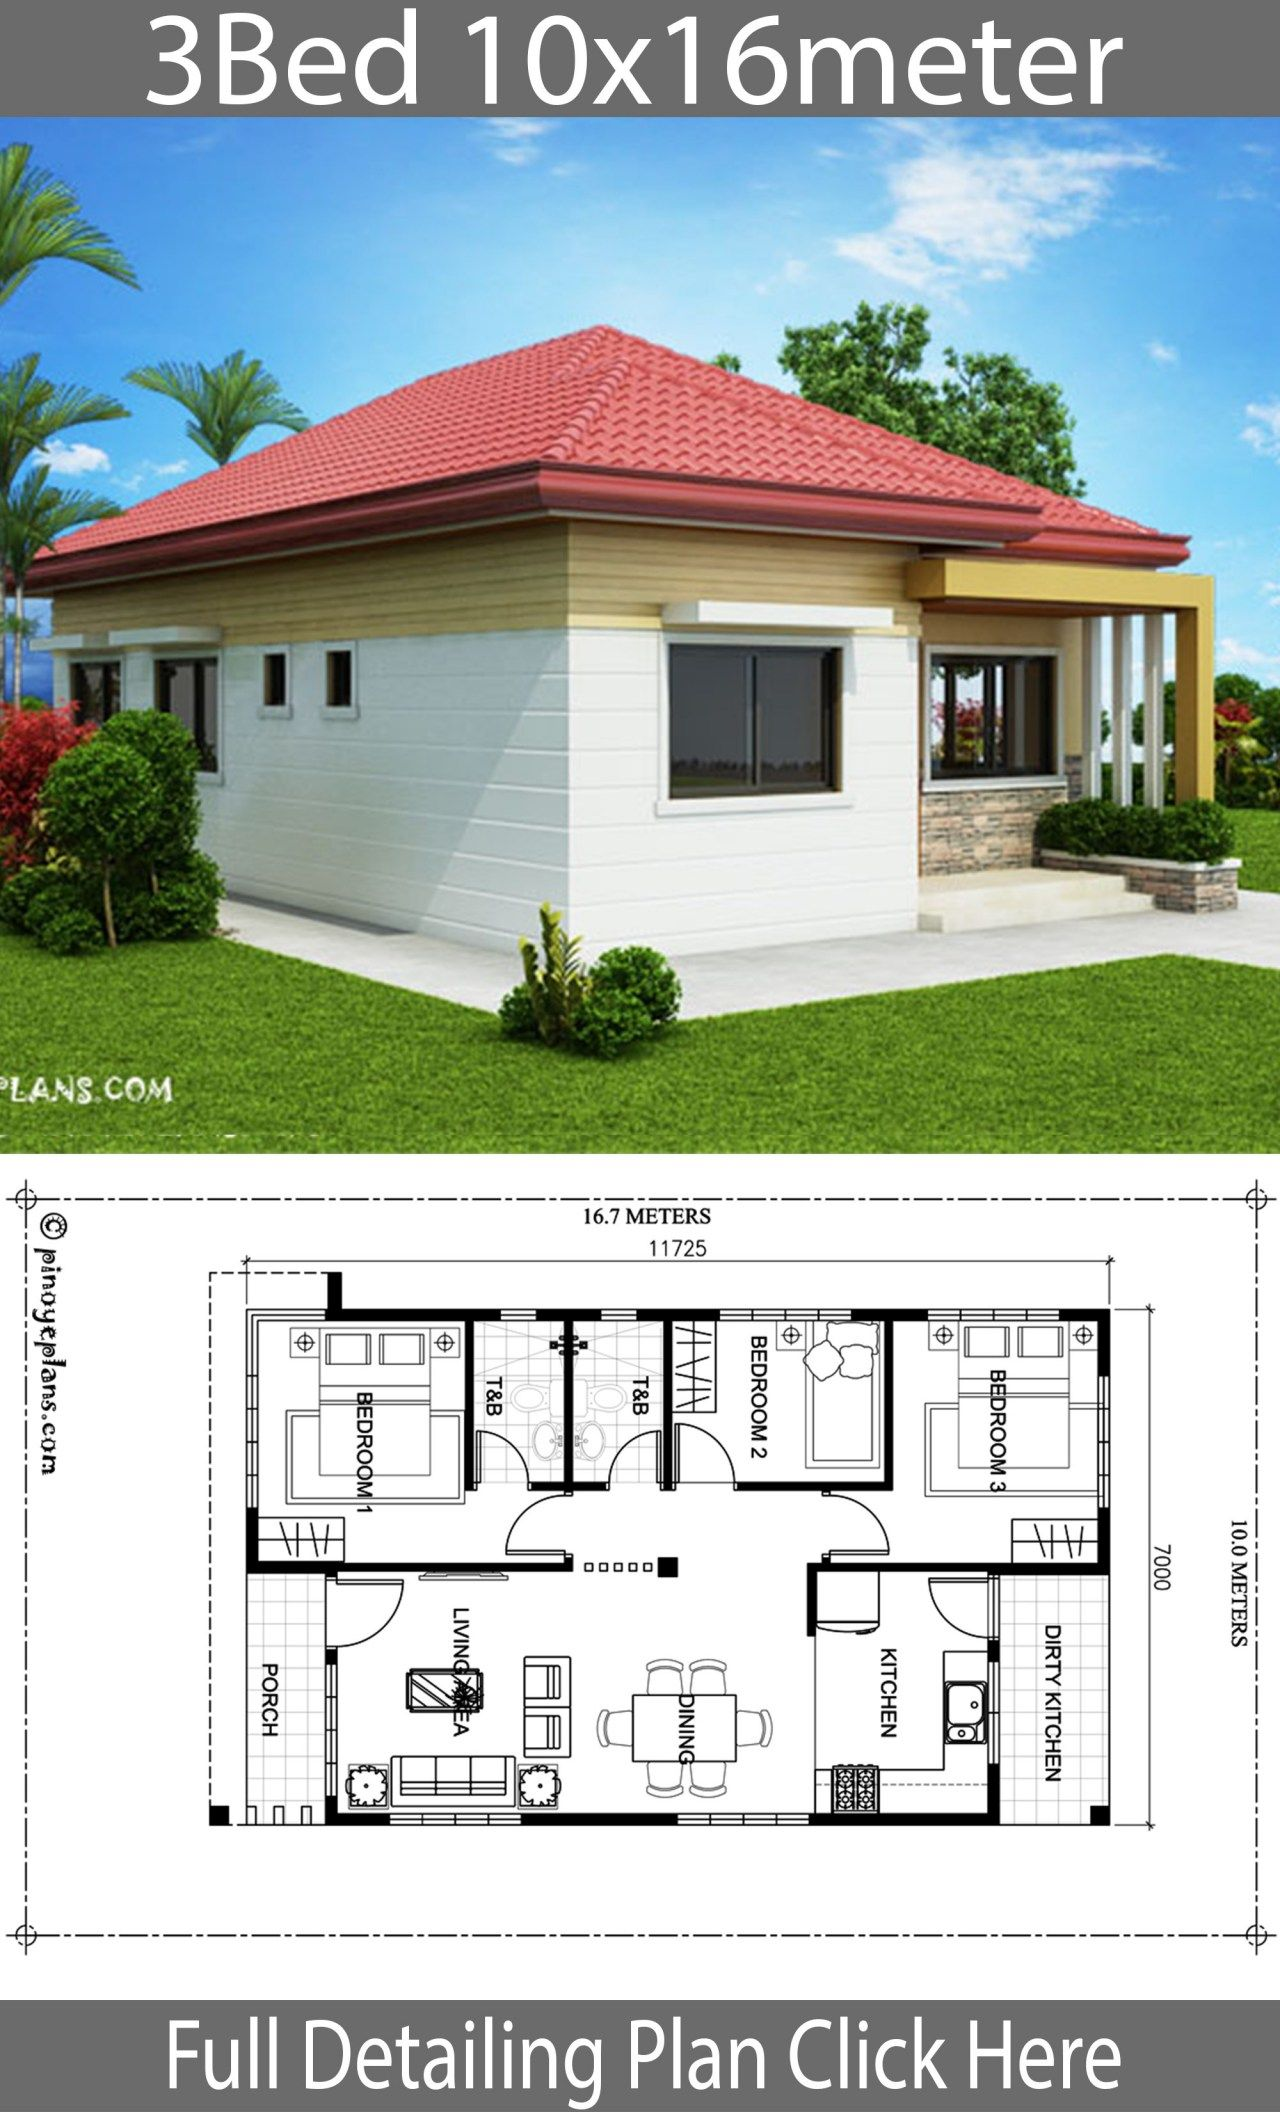 Home Design 10x16m With 3 Bedrooms Home Ideas Bungalow Style House Plans Cottage Style House Plans Affordable House Plans